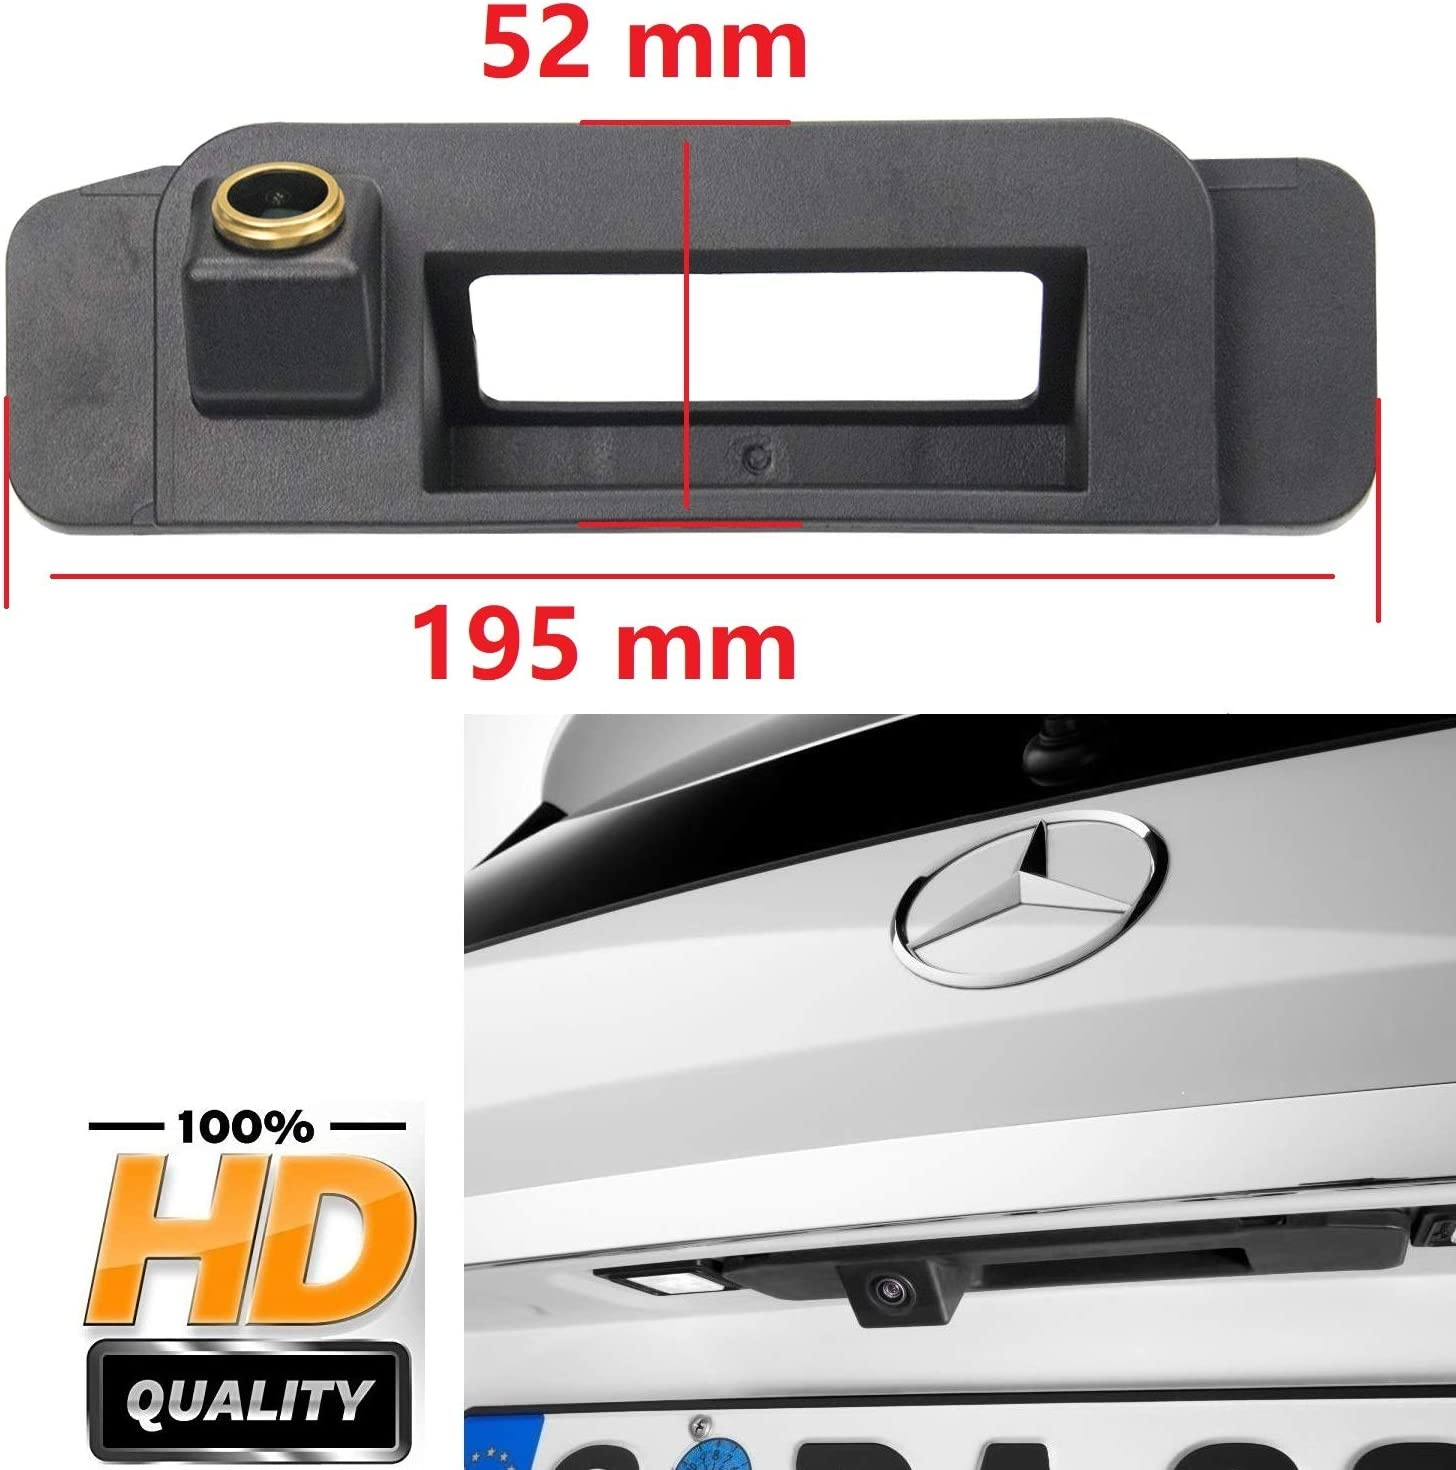 HD 1280x720p Rear Reversing Backup Camera Rearview License Plate Camera Night Vision Ip69 Waterproof for Mercedes Benz C Class W205 CLA C117 2015-2017 w//NTG5.0//5.1